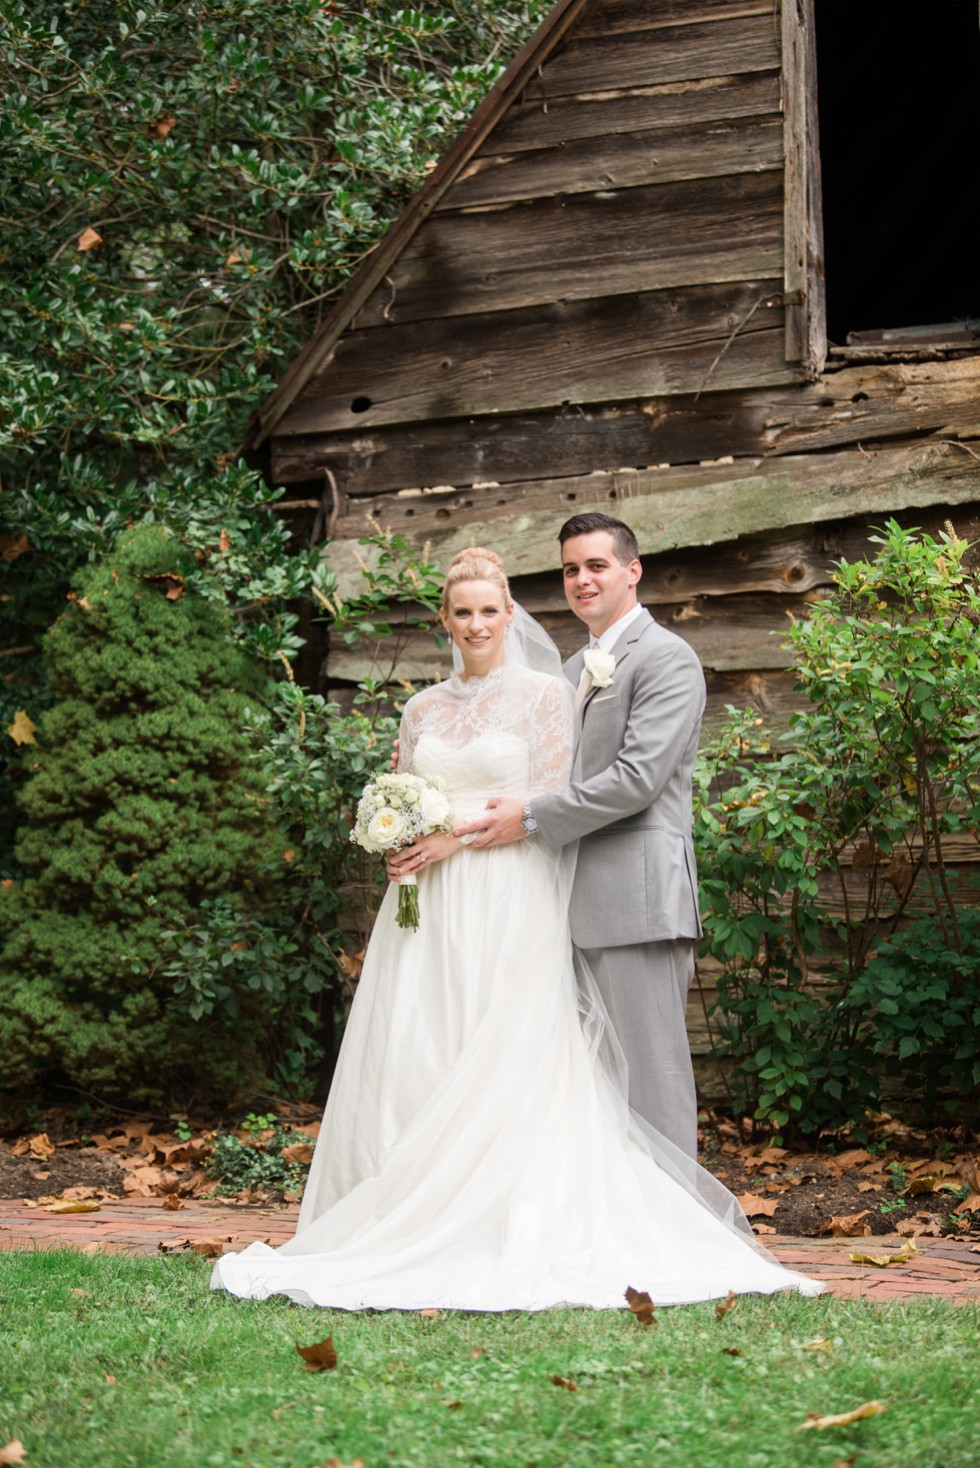 Bride and Groom kissing in front of the wood cabin at Elkridge Furance Inn